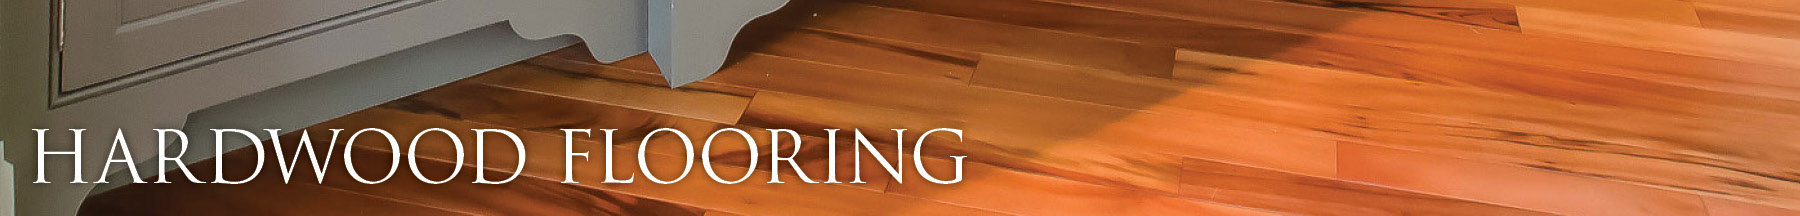 Page Headers-Hardwood Flooring